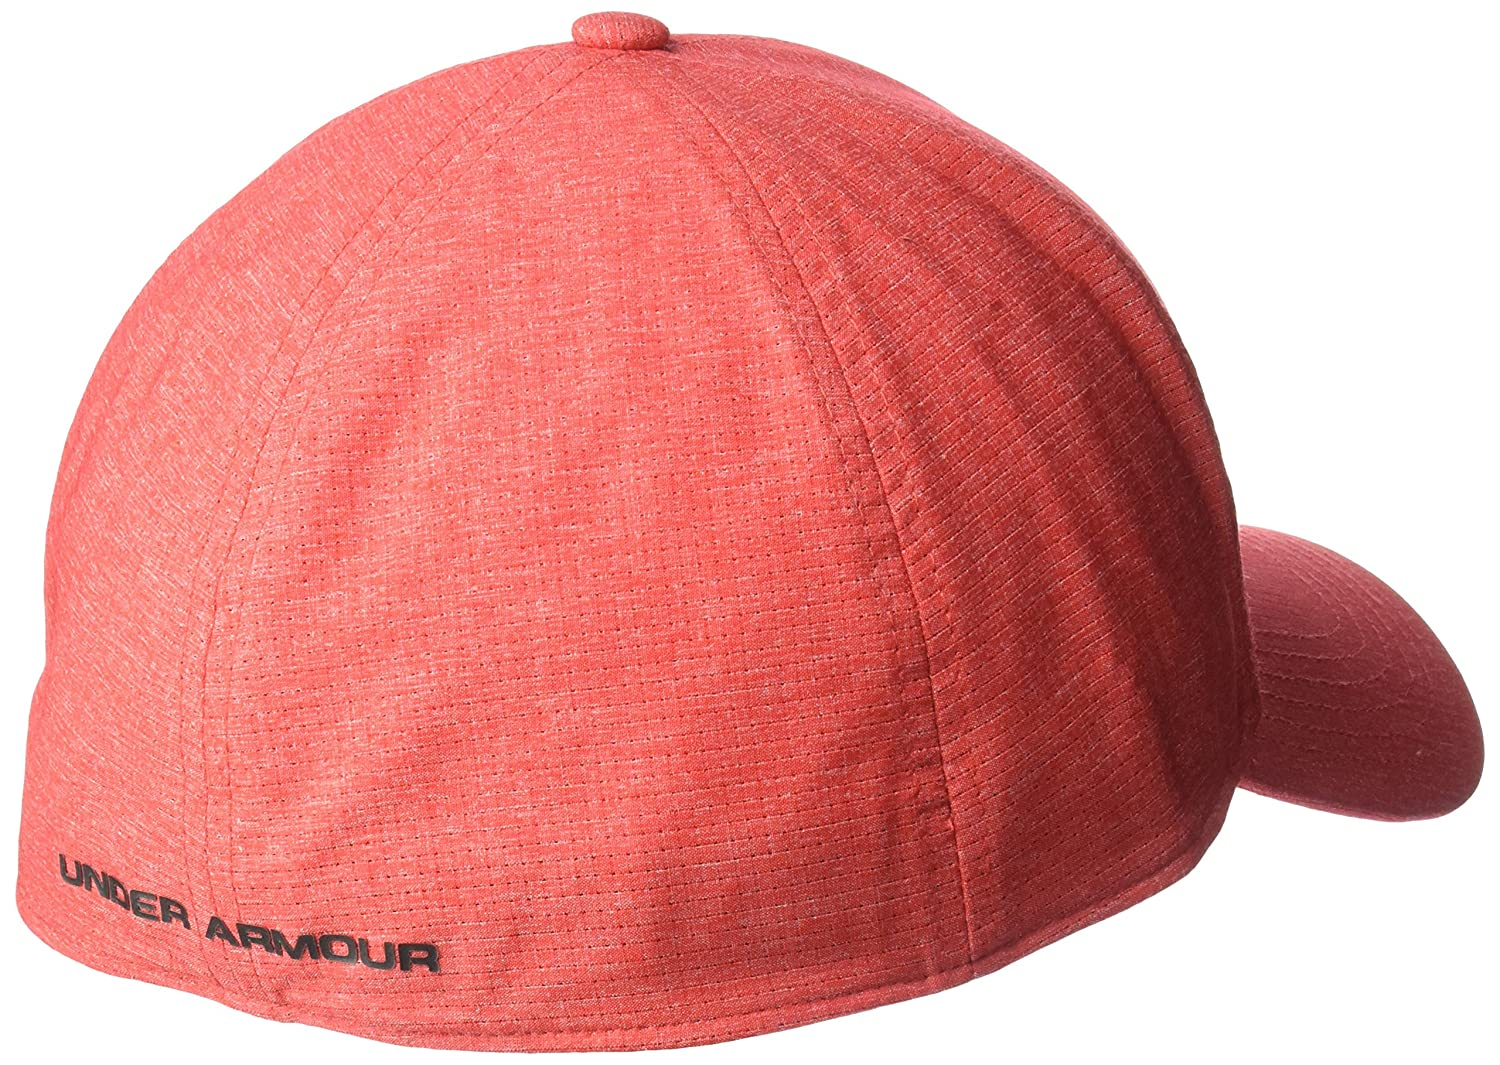 Under Armour Men s CoolSwitch ArmourVent 2.0 Cap Under Armour Accessories  1291856-P larger image 33f06f7835e2